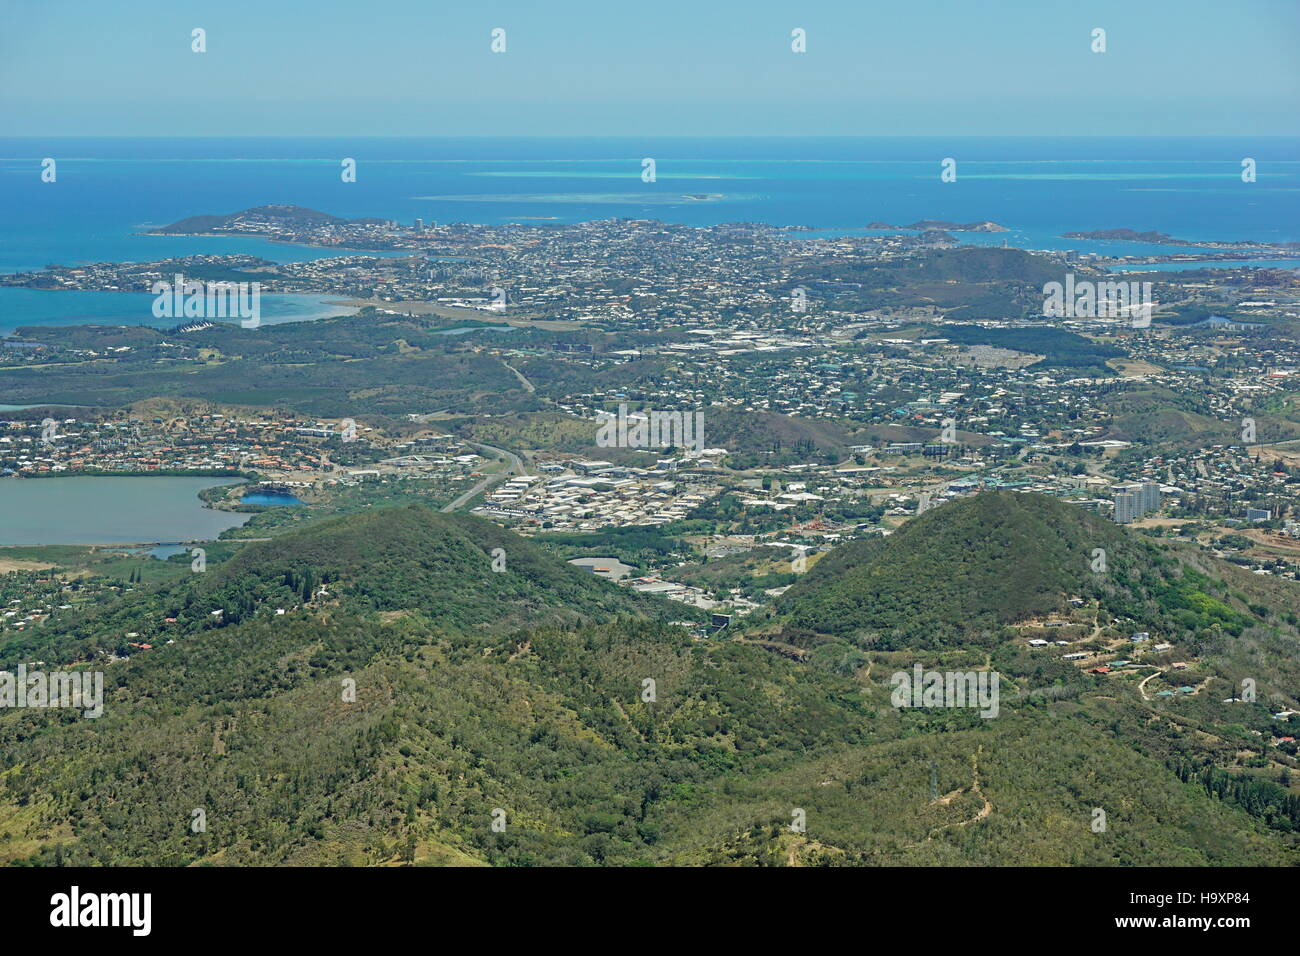 Aerial view of the city of Noumea on the southwest coast of New Caledonia island, south Pacific ocean - Stock Image